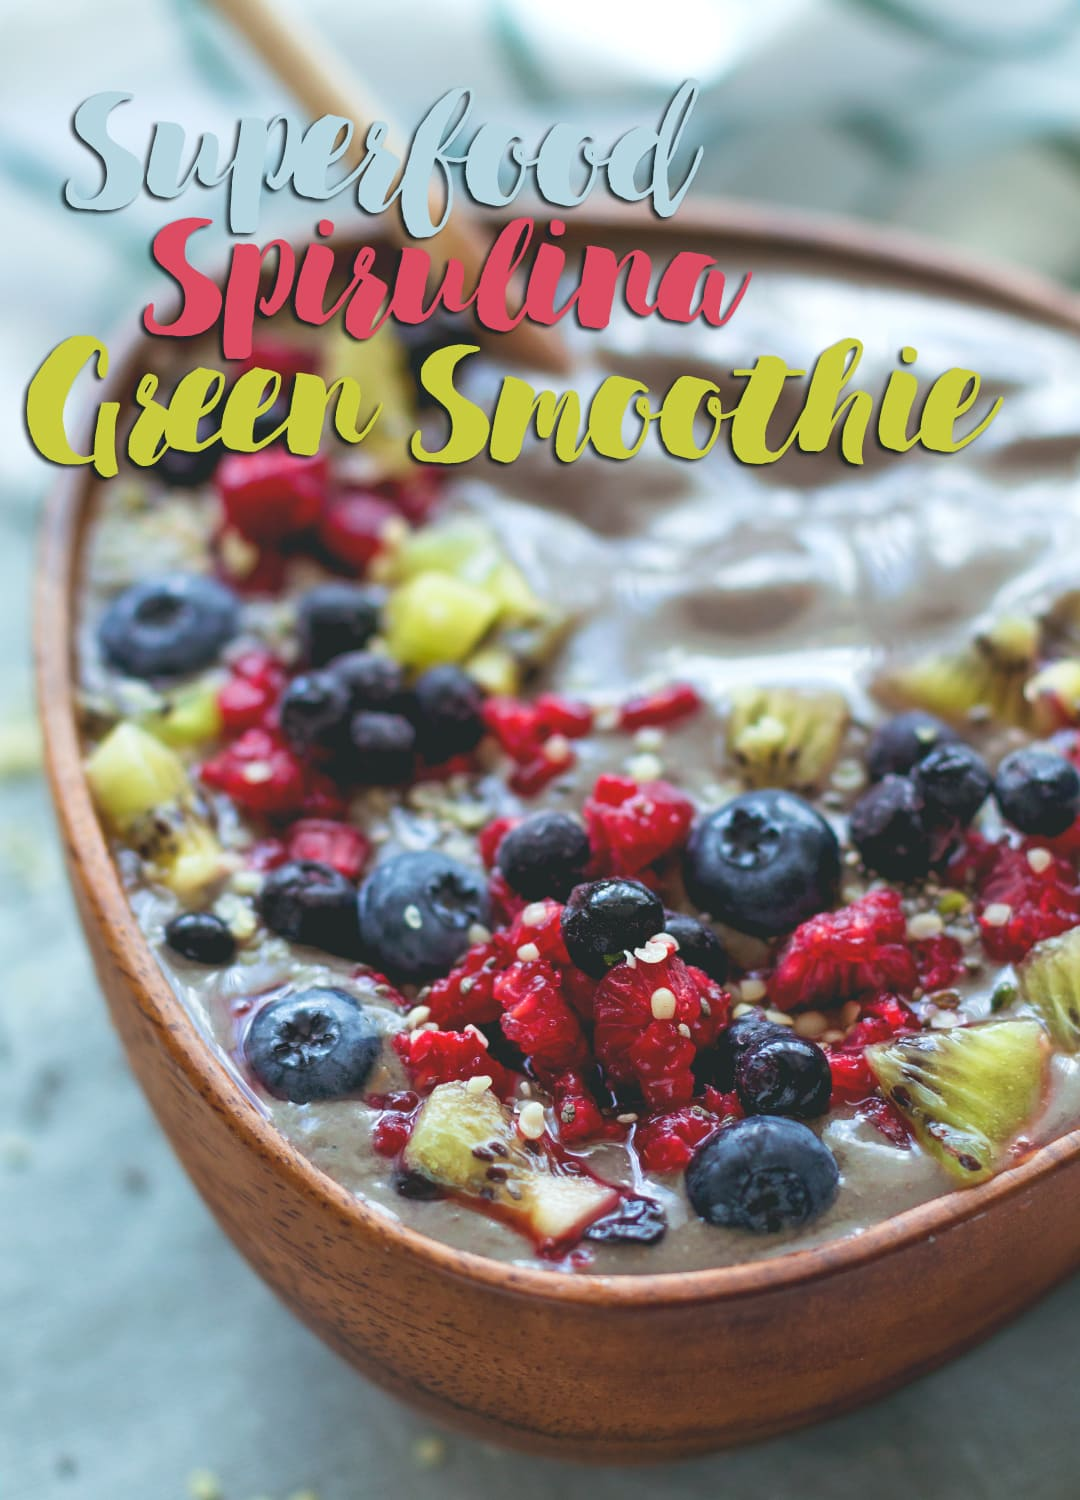 Superfood Spirulina Green Smoothie - banana, mango, raspberries, strawberries, coconut water and amazing protein packed spirulina powder. You'll love this smoothie! Easy to make, really tasty, and packed with nutrients! | thehealthfulideas.com